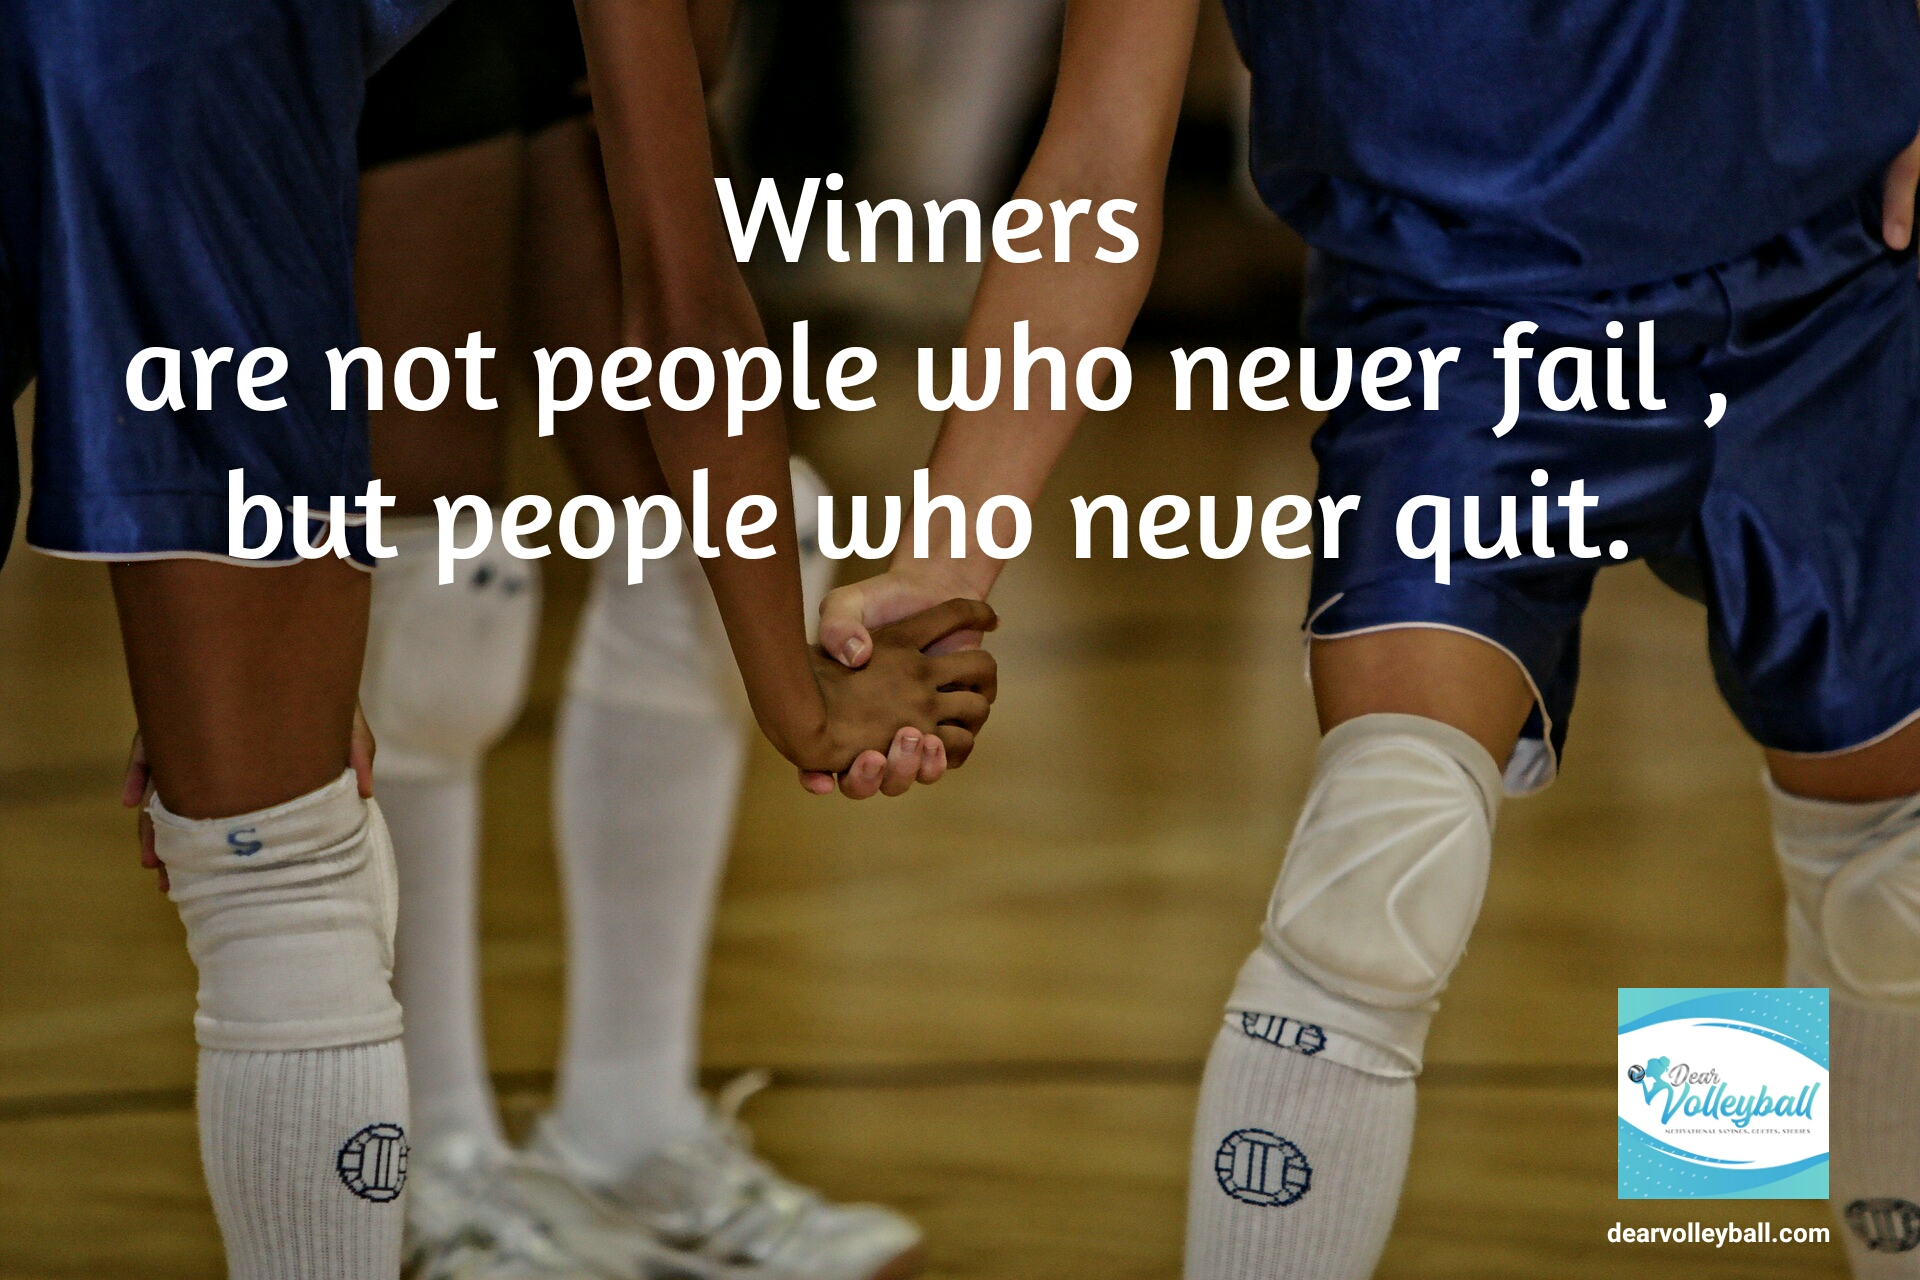 Inspirational volleyball quotes and sayings on Dear Volleyball.com